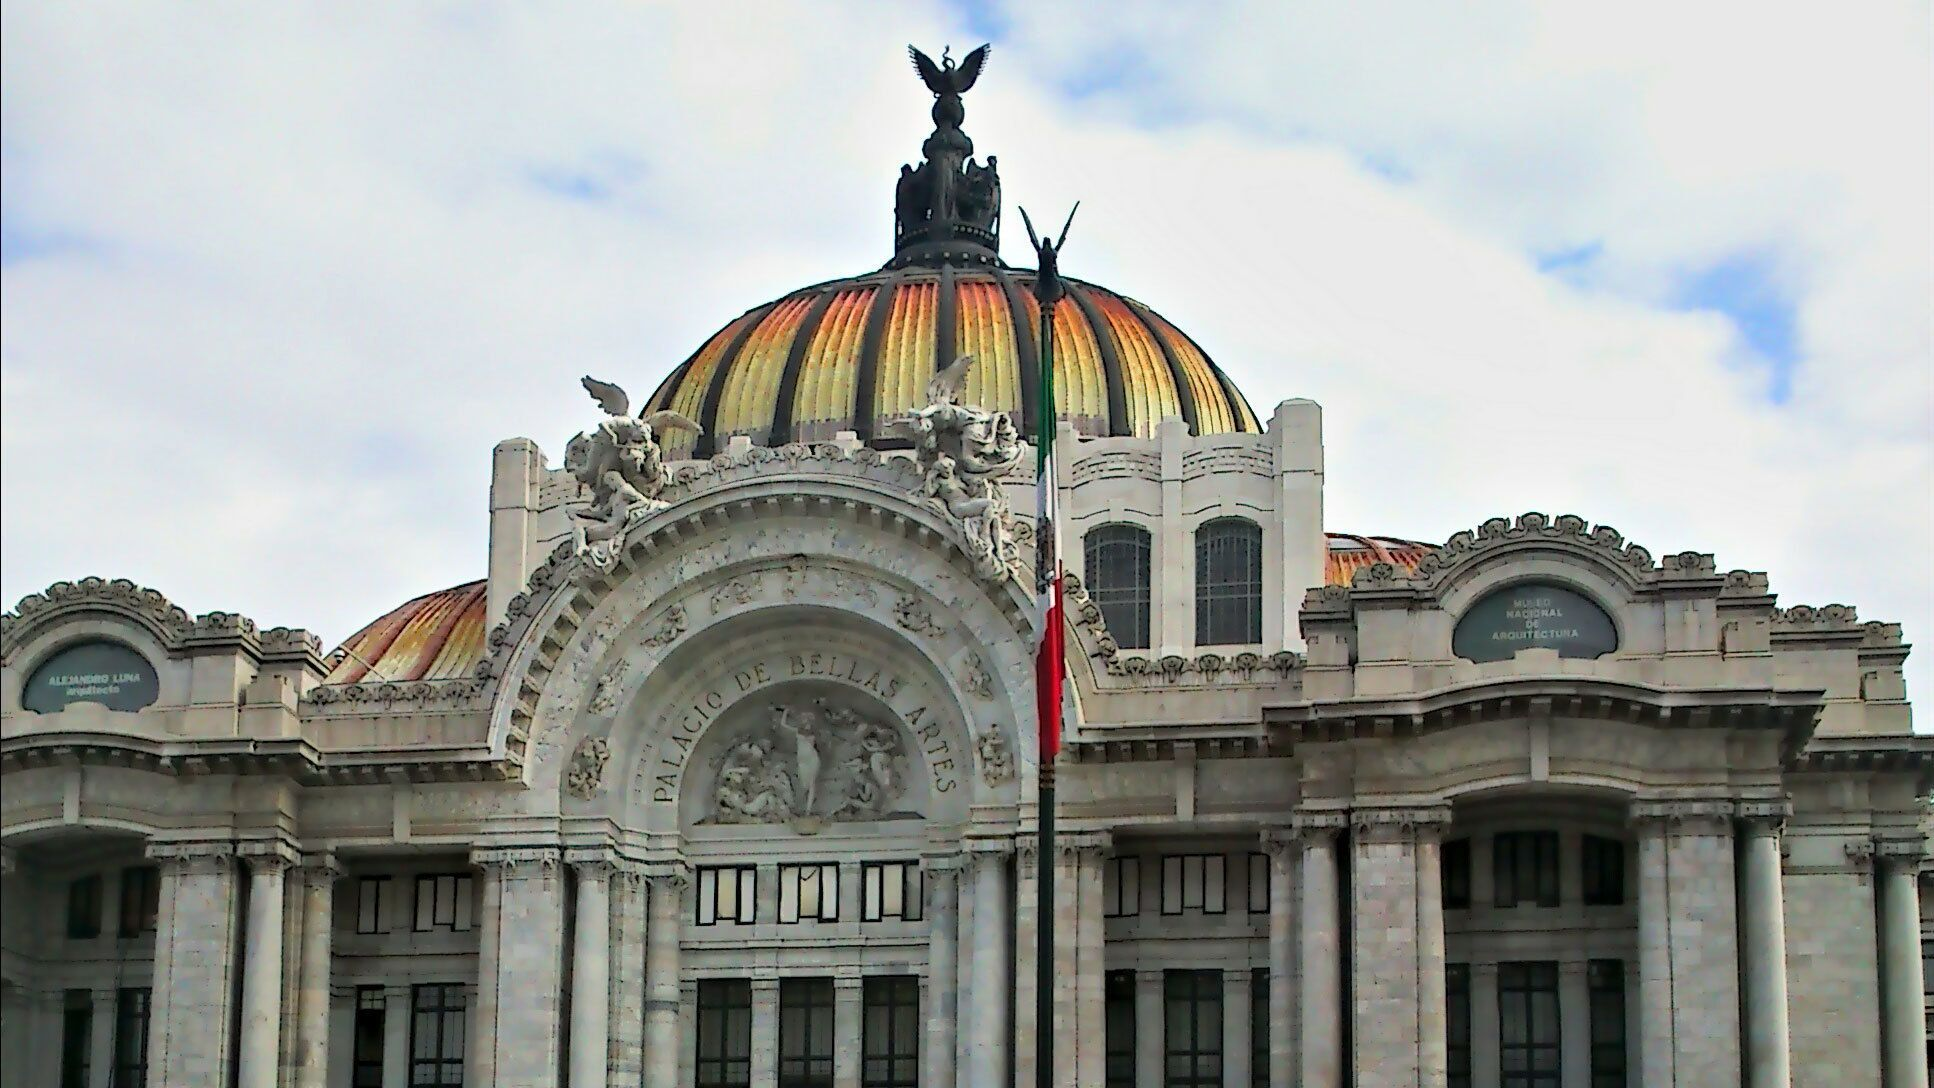 The Palacio de Bellas Artes in Mexico City